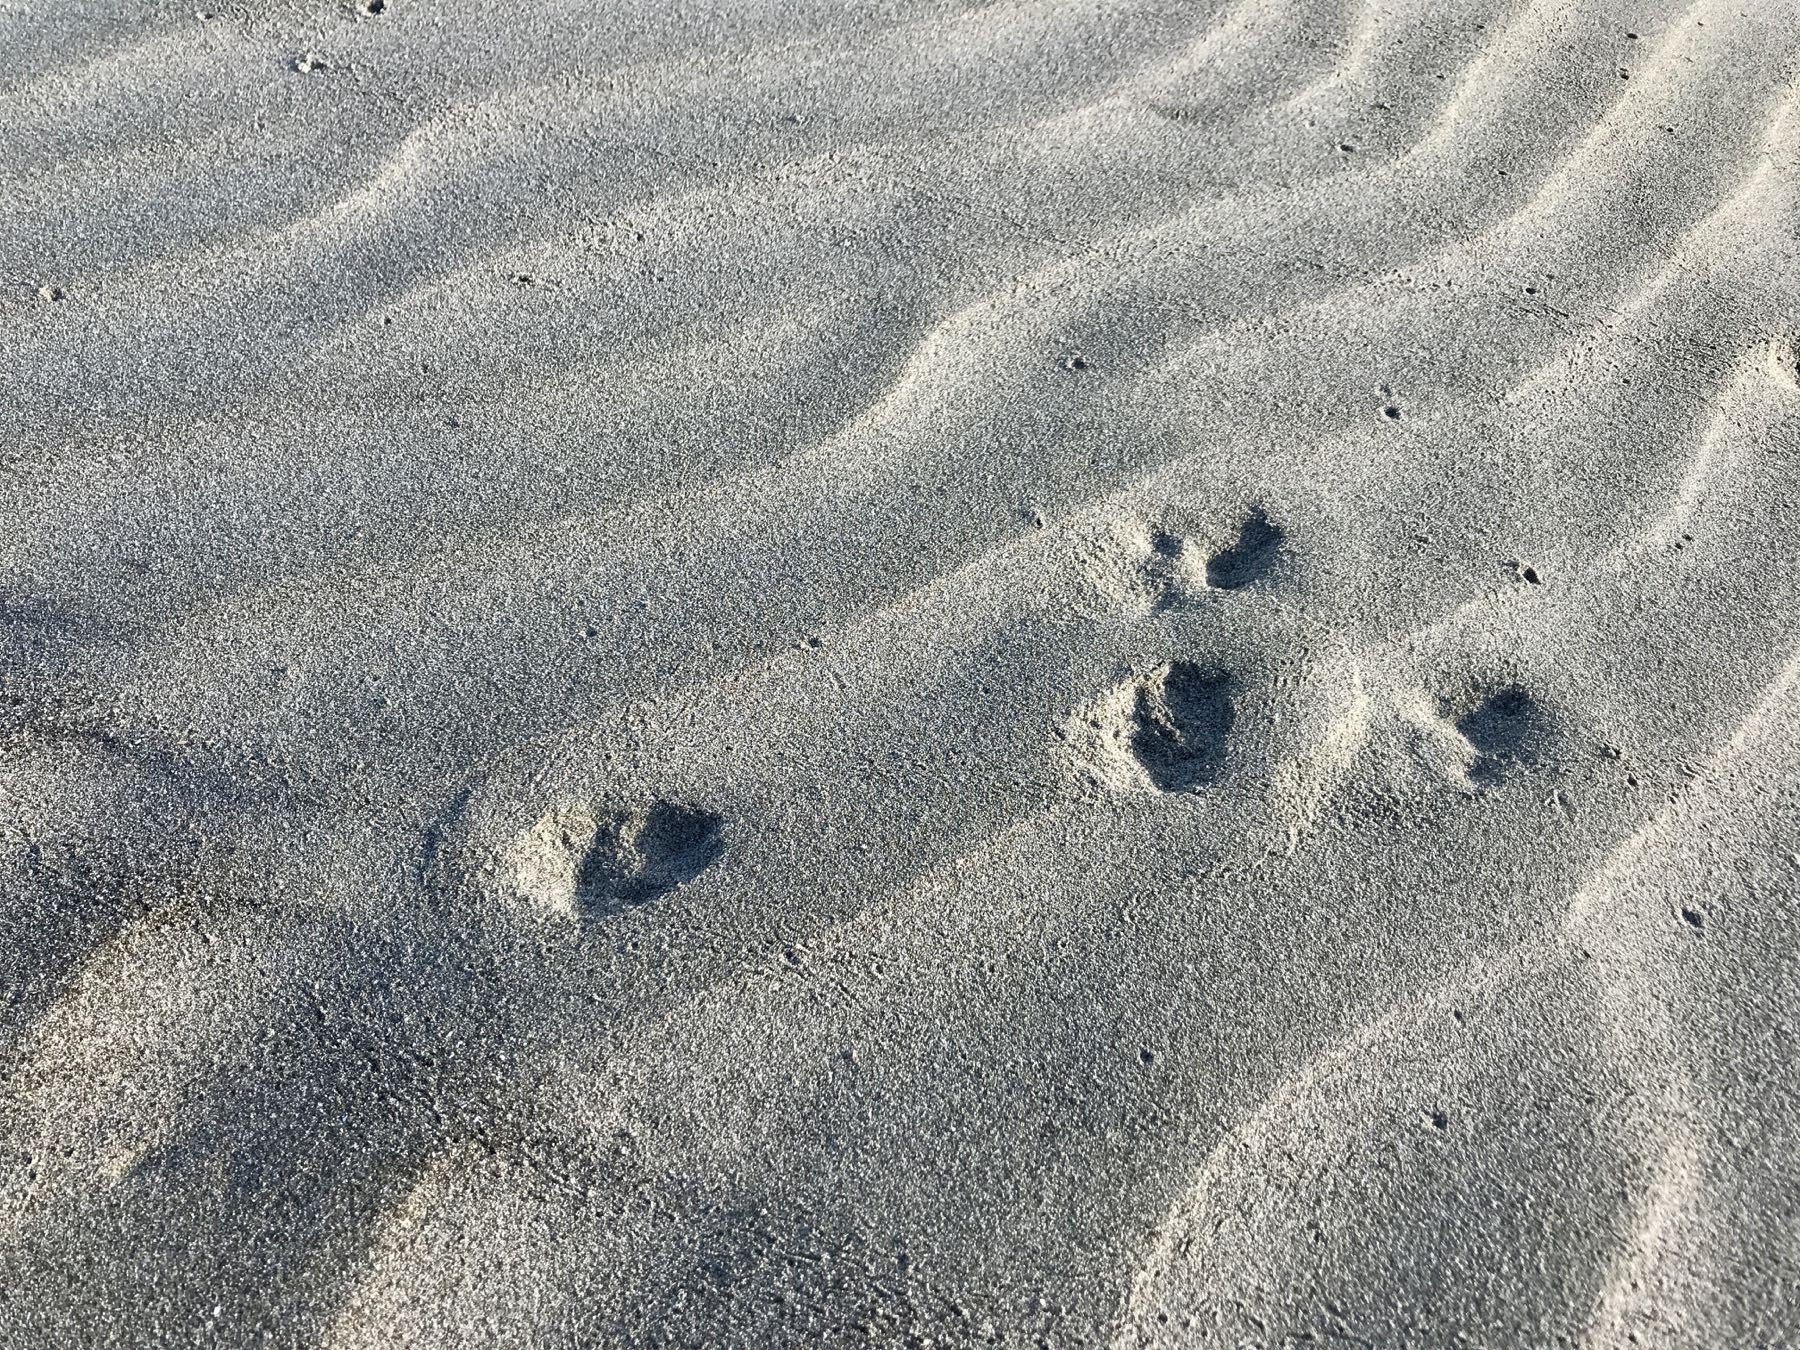 Tracks in the sand at the beach - probably a rabbit.